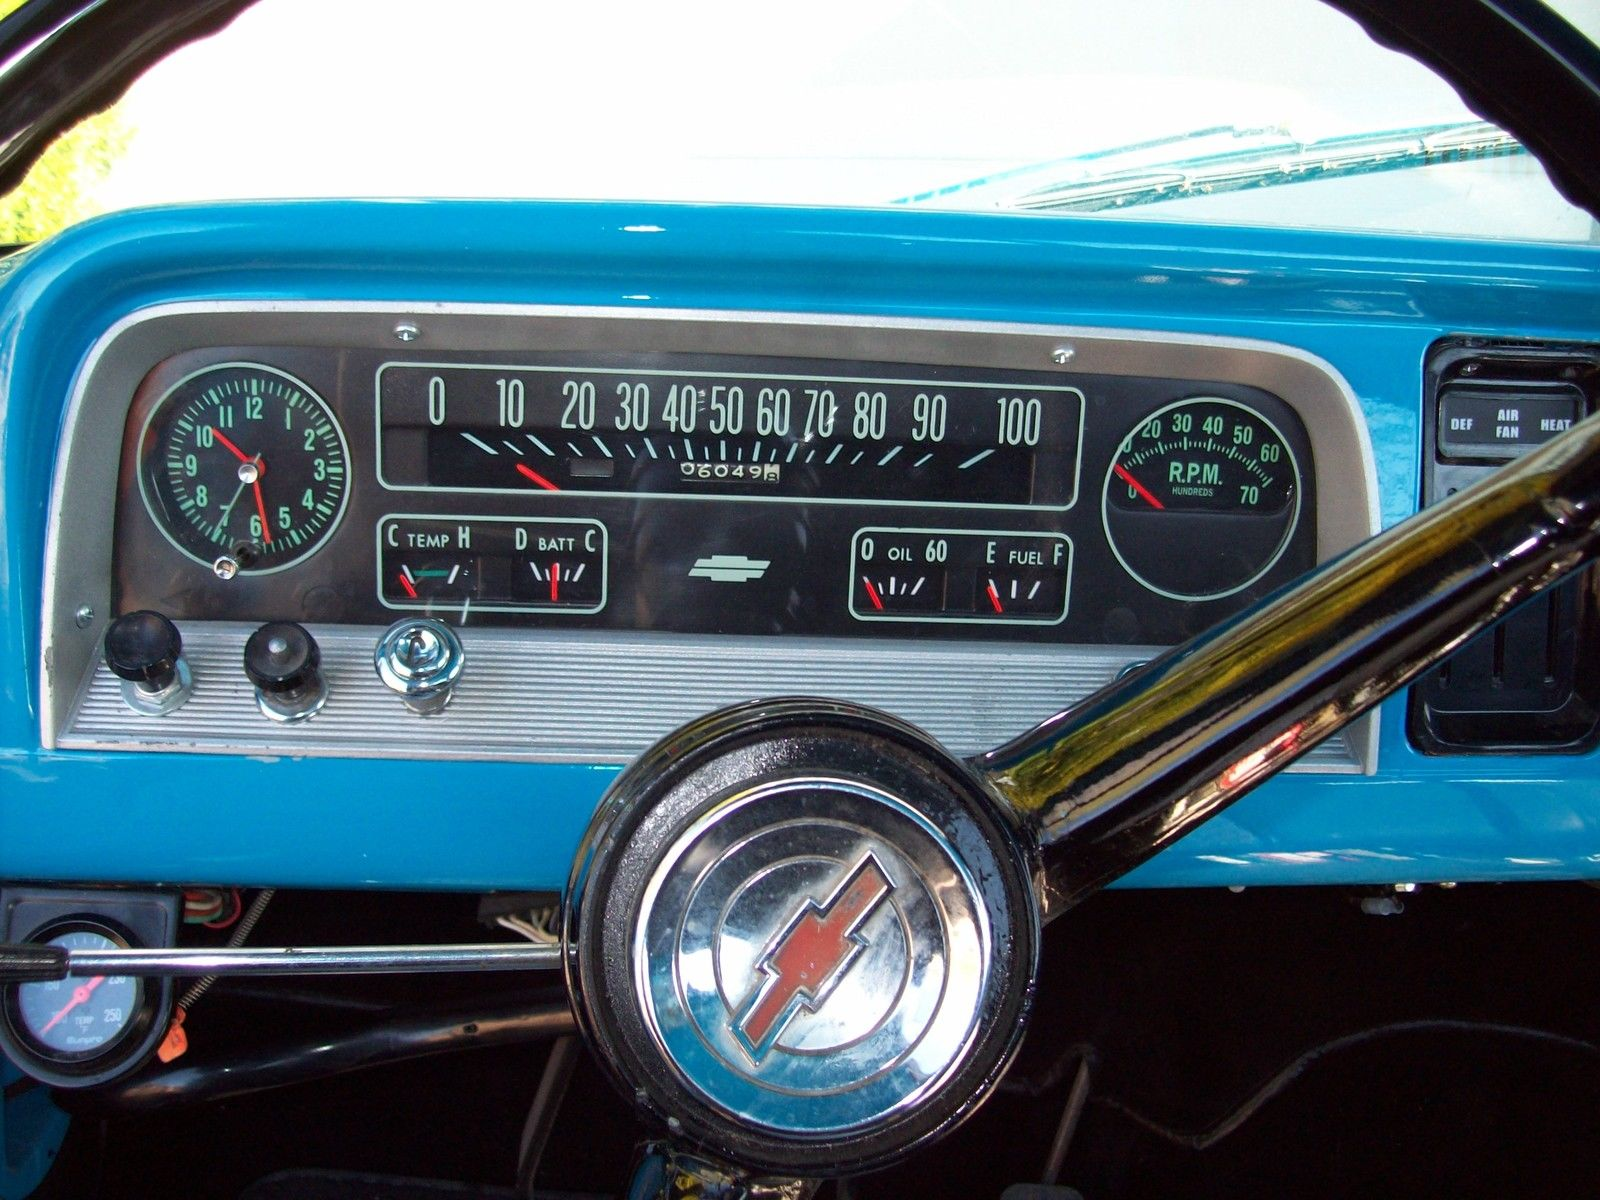 1965 Chevy C10 Truck Restored with Contractor Bed. Great ...